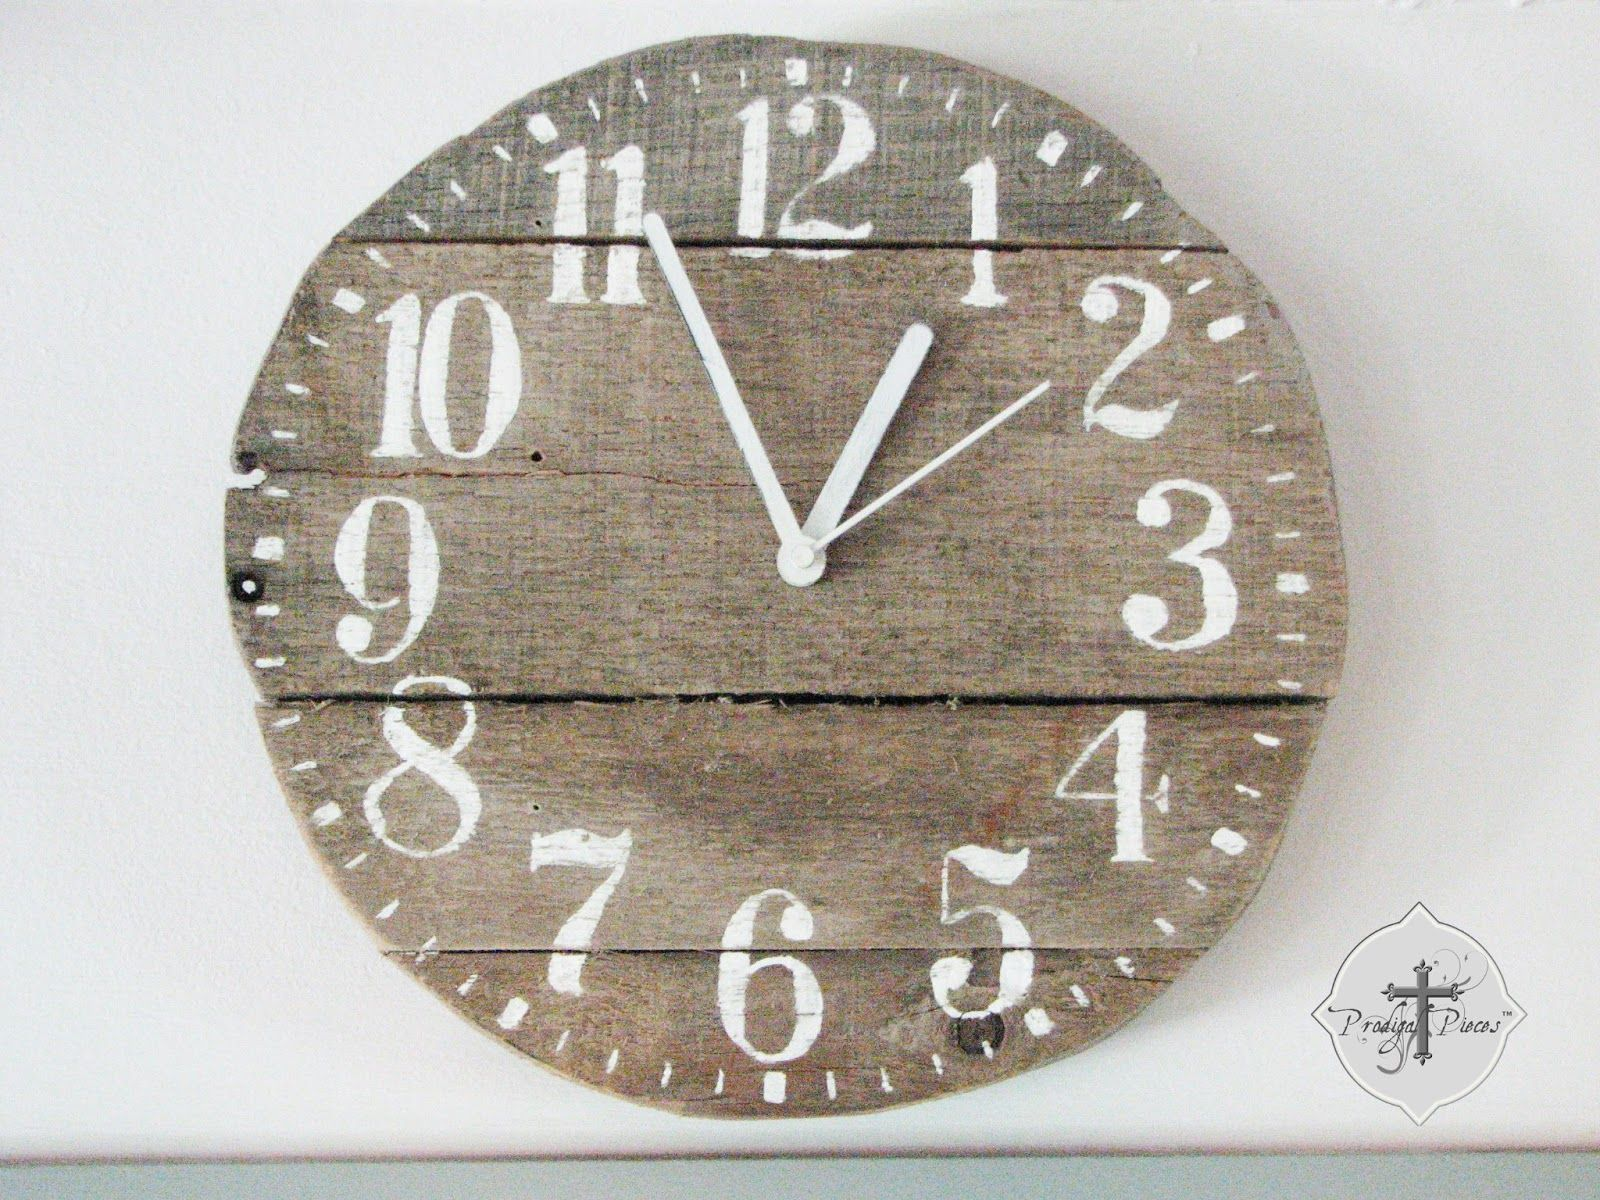 Diy Reclaimed Pallet Wood Clock Via Http Www Prodigalpieces Com Barn Wood Projects Reclaimed Wood Diy Wood Diy